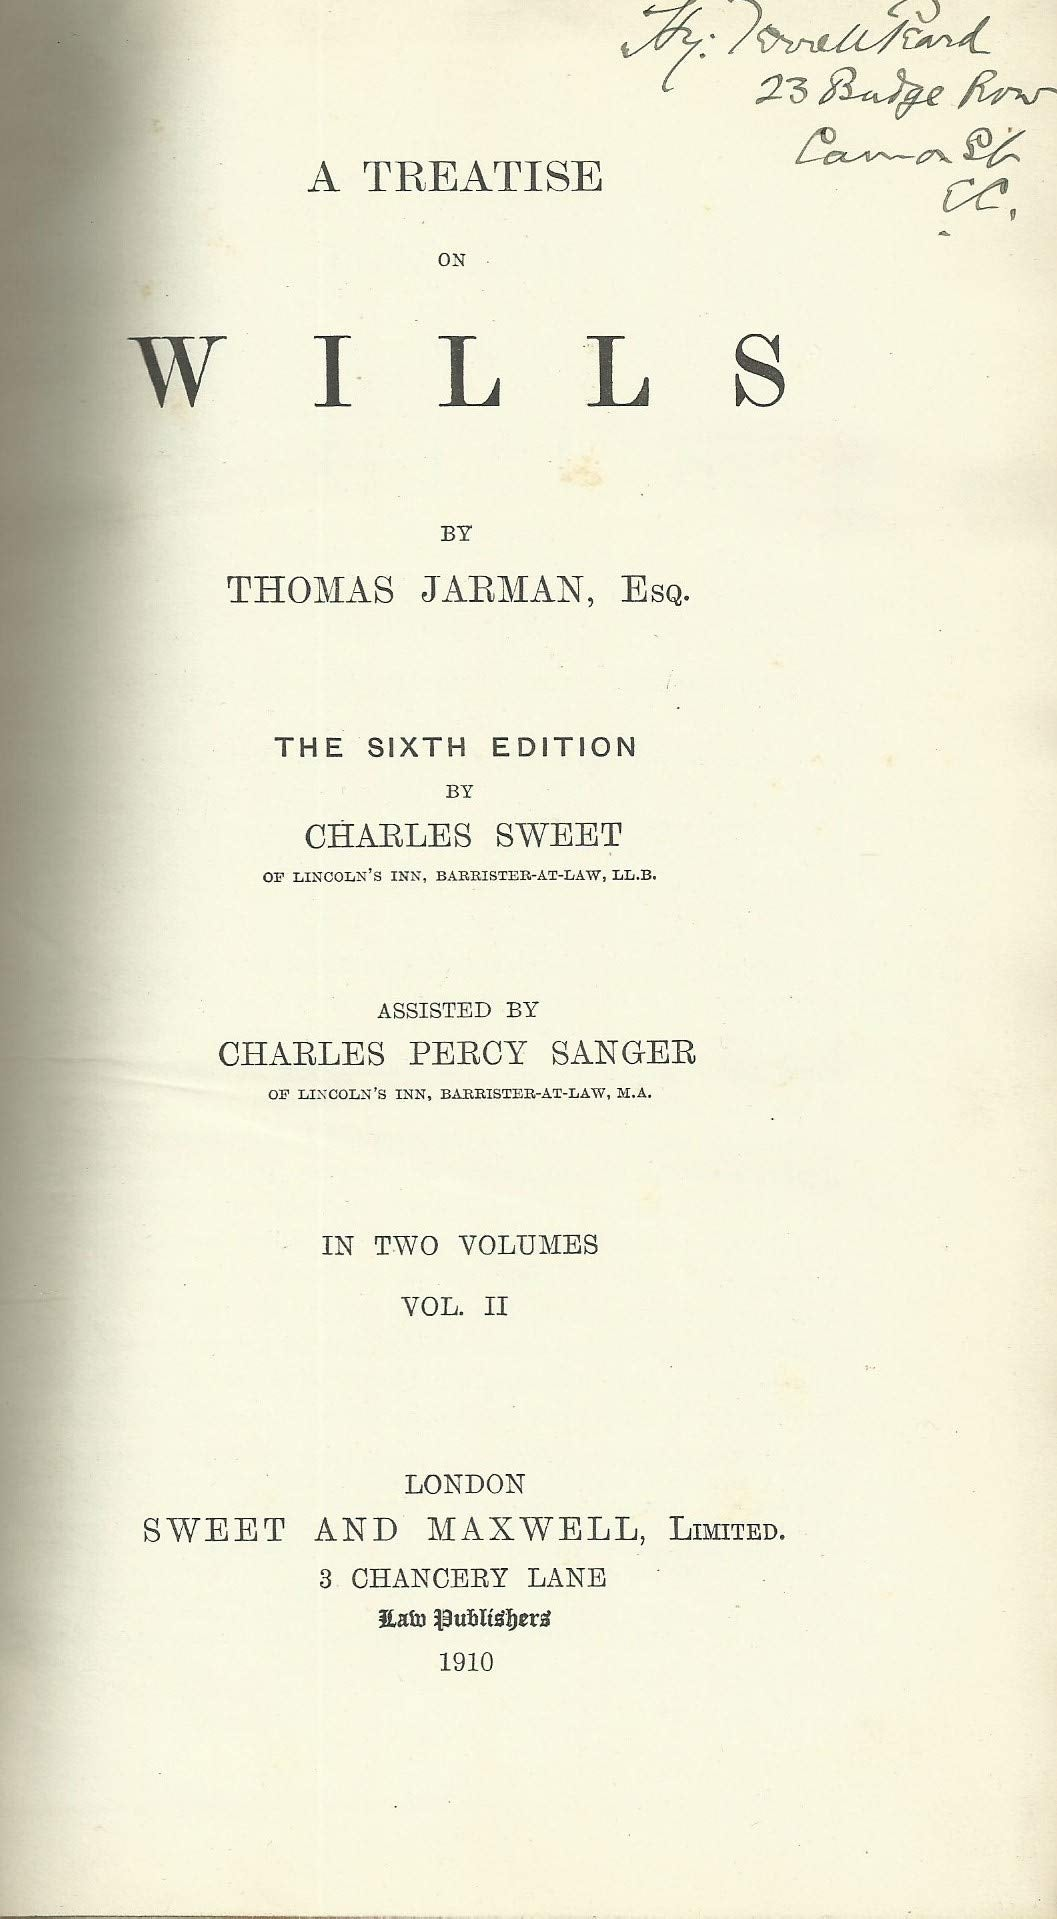 A Treatise on Wills (Jarman on Wills) - Sixth Edition, Volume II - 6th Edition, Volume 2